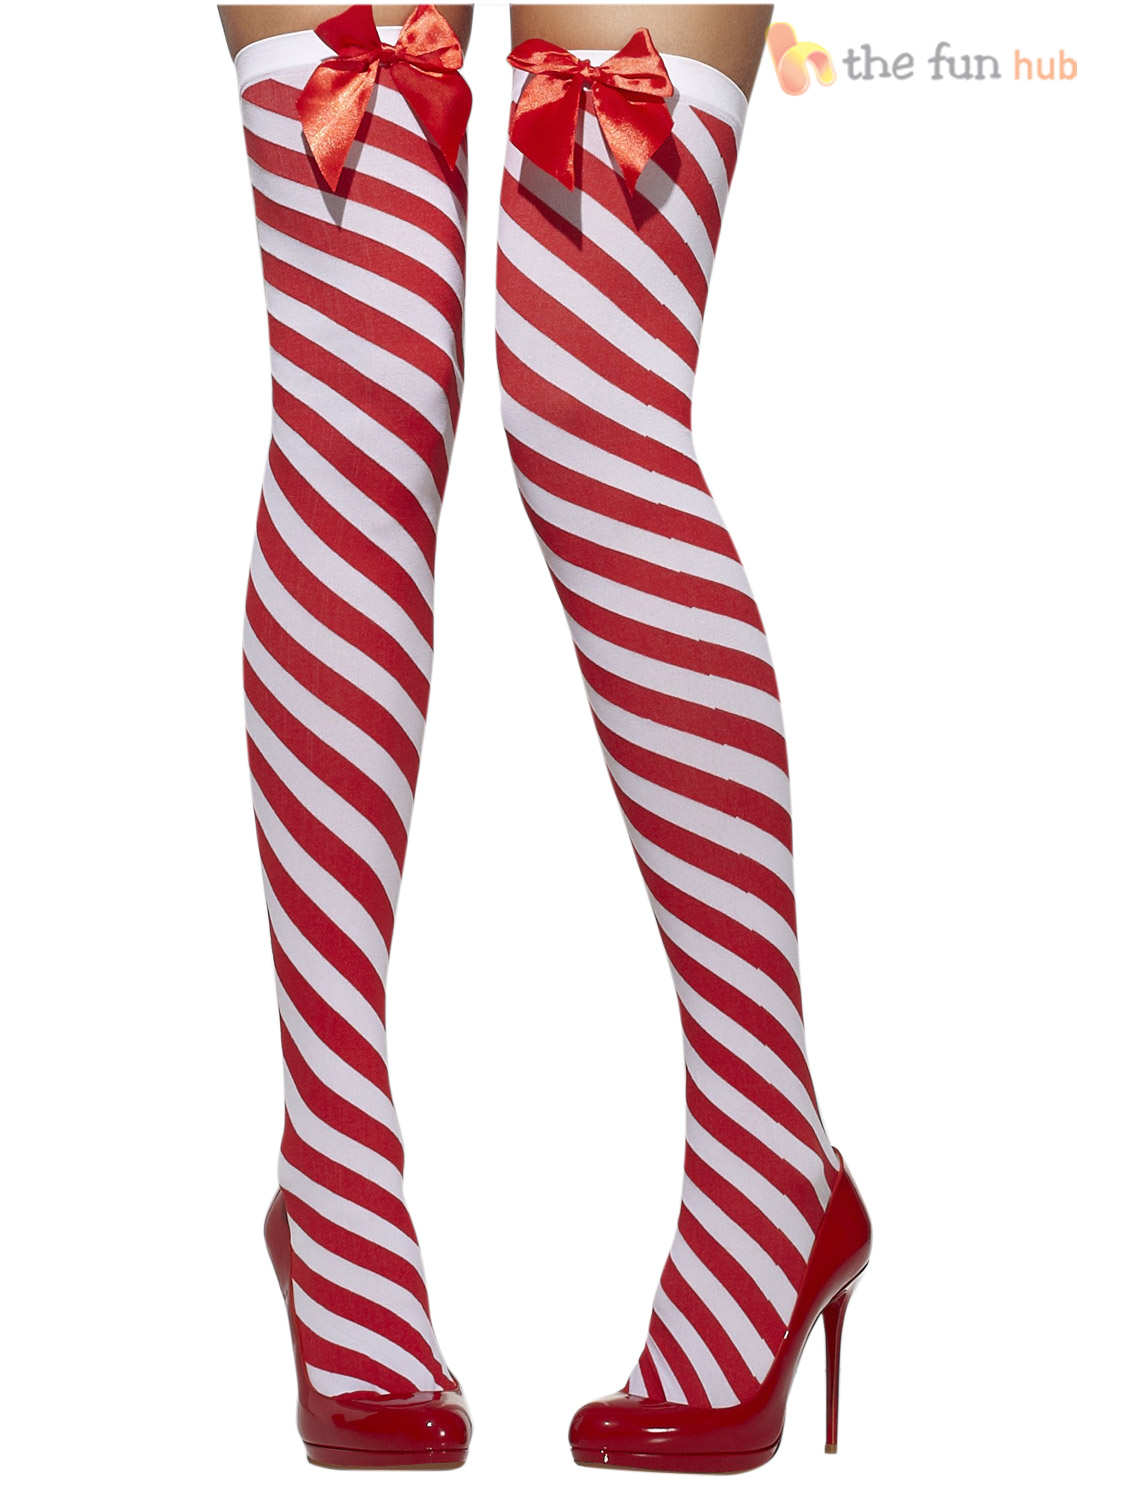 Candy striped stockings